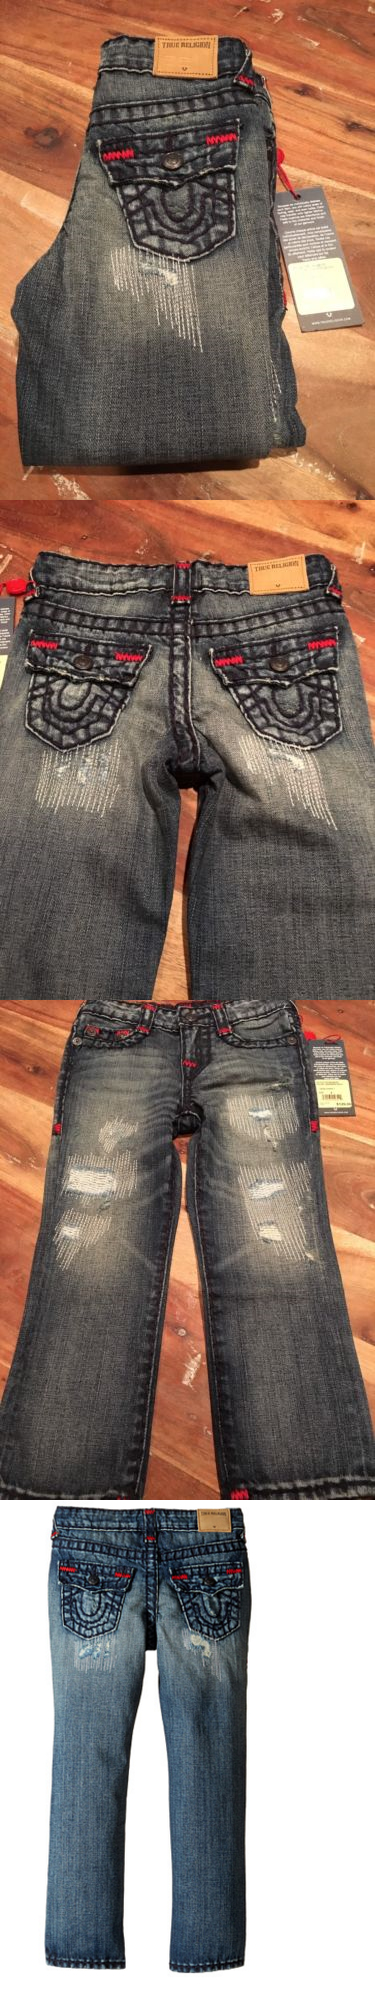 13c0df25e Jeans 77475: Nwt True Religion Toddler Boys Geno Super T Jeans Tarnished  Wash Size 4T $129 -> BUY IT NOW ONLY: $59.99 on eBay!